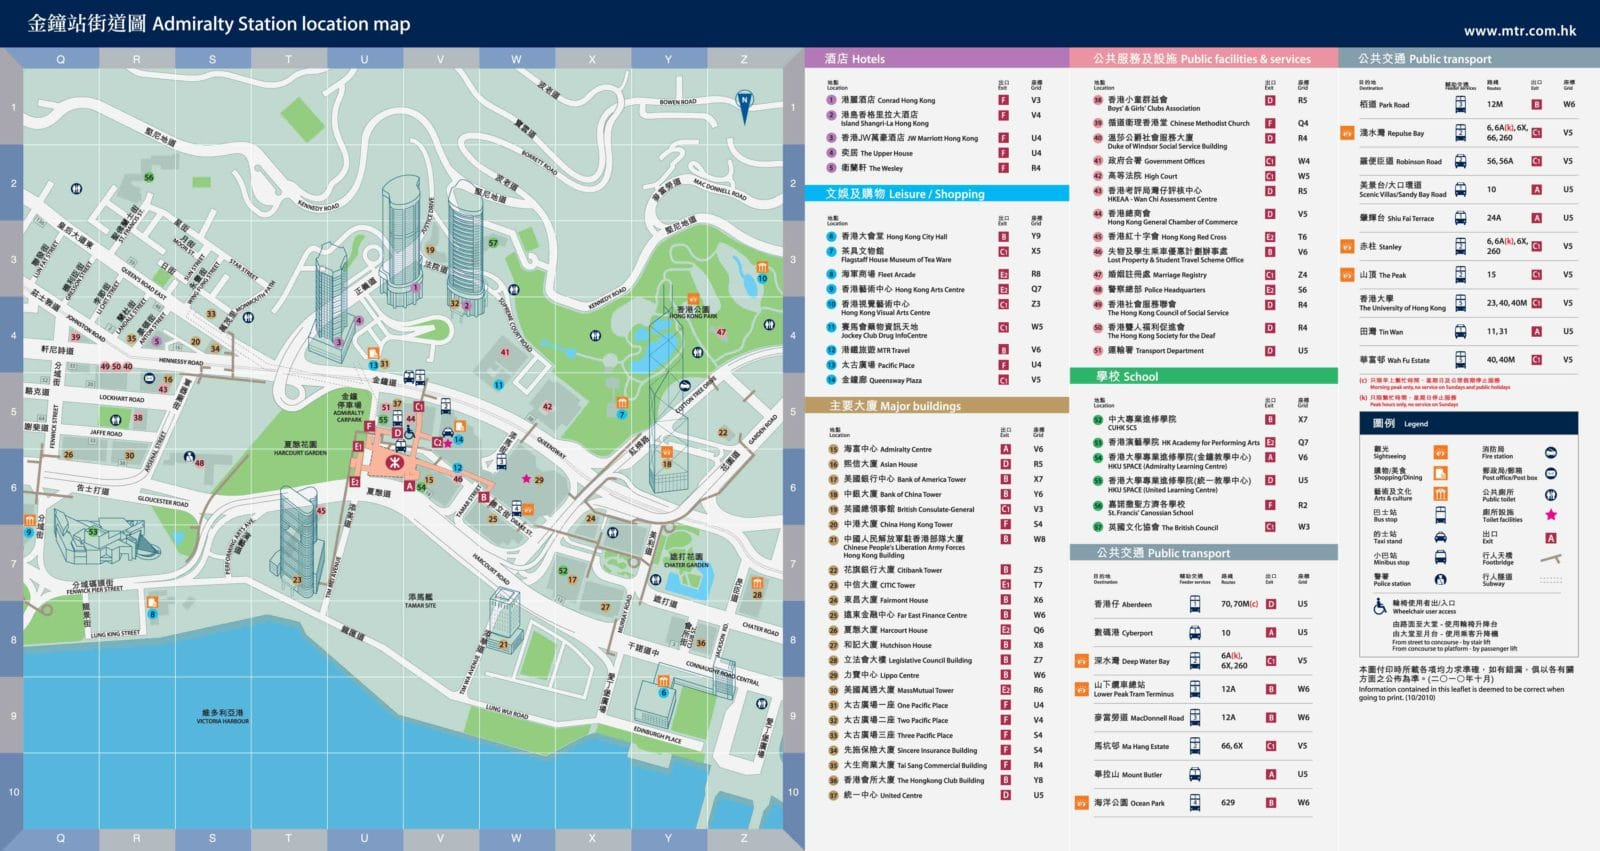 Hong Kong: Central MTR station area map 2012-2013